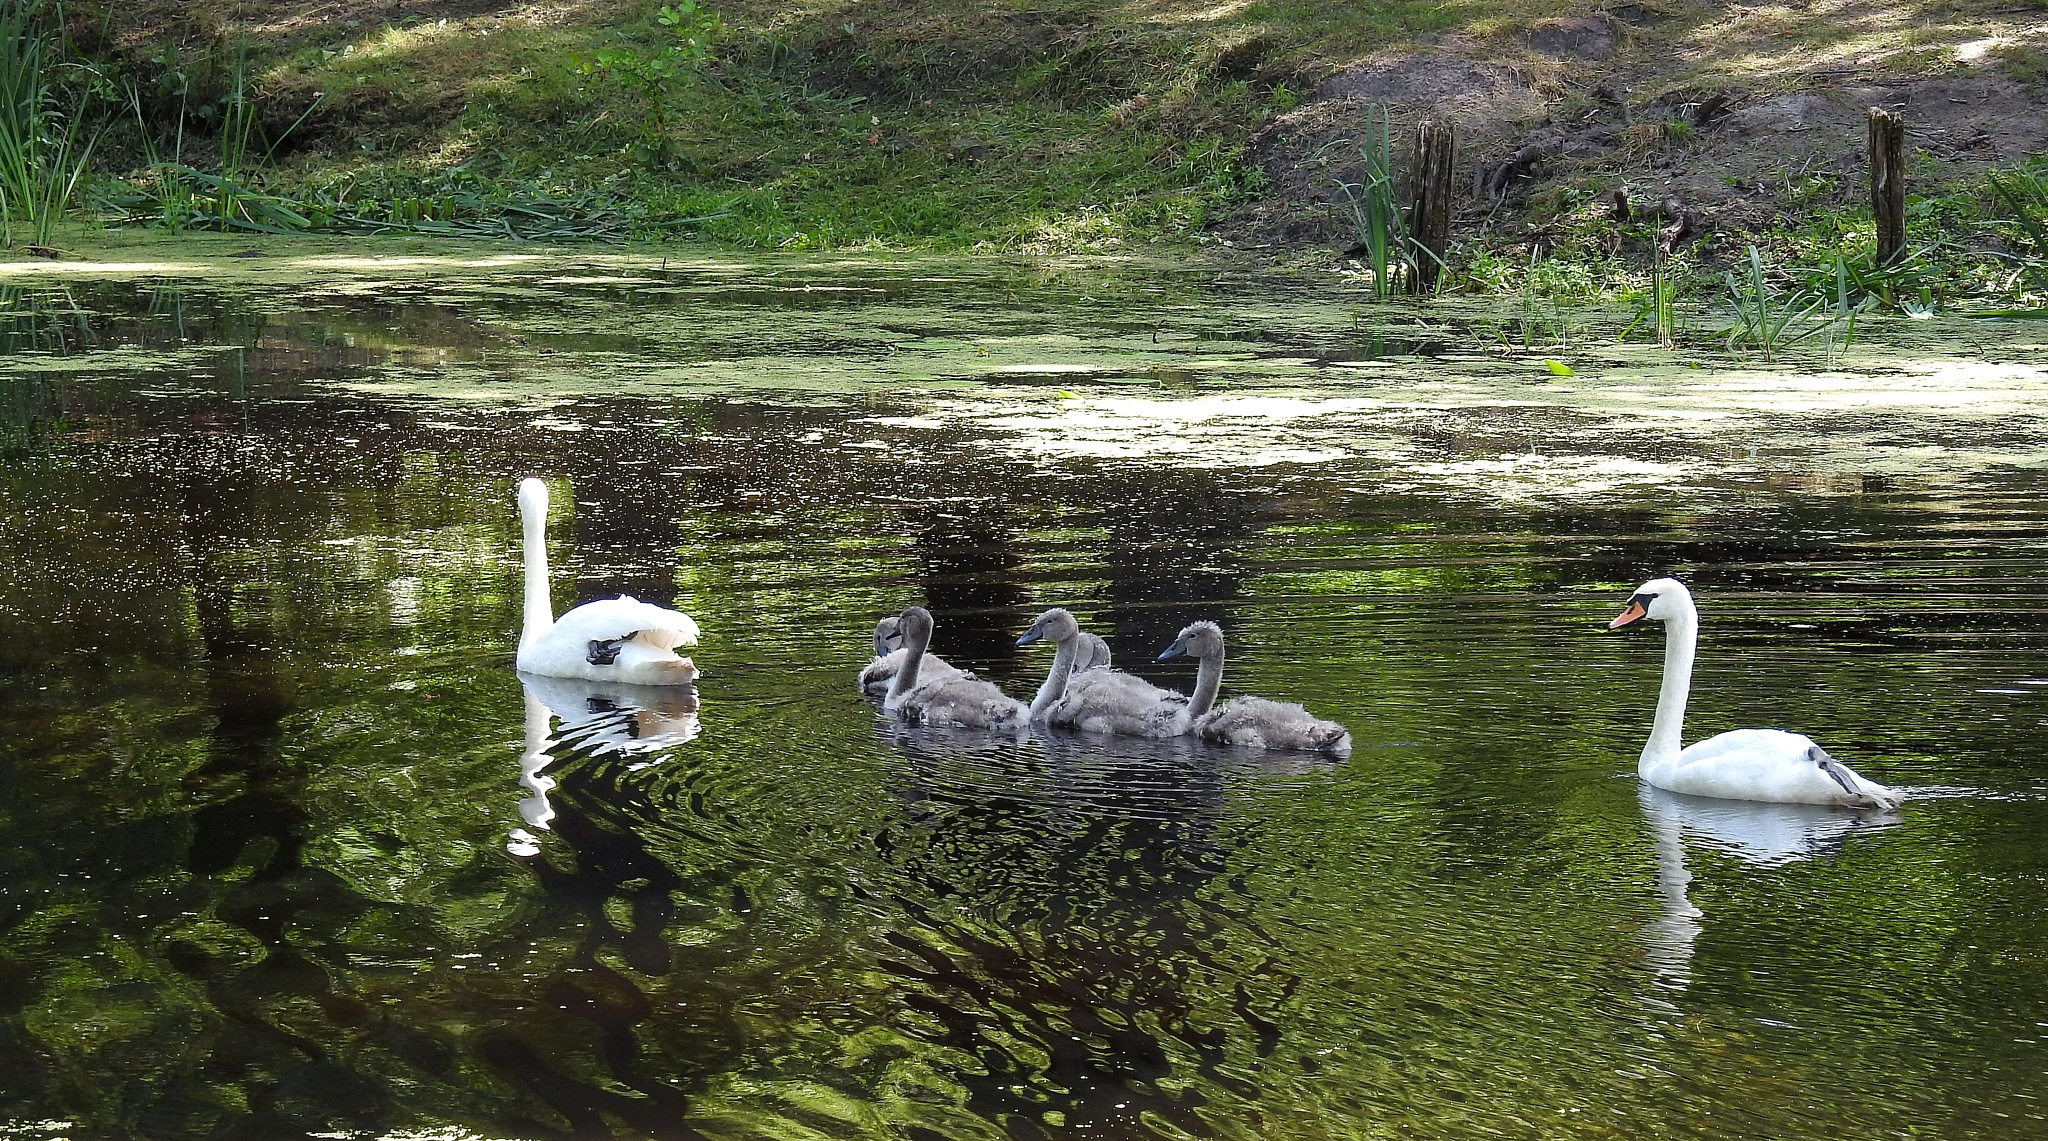 The swan family by Bob66